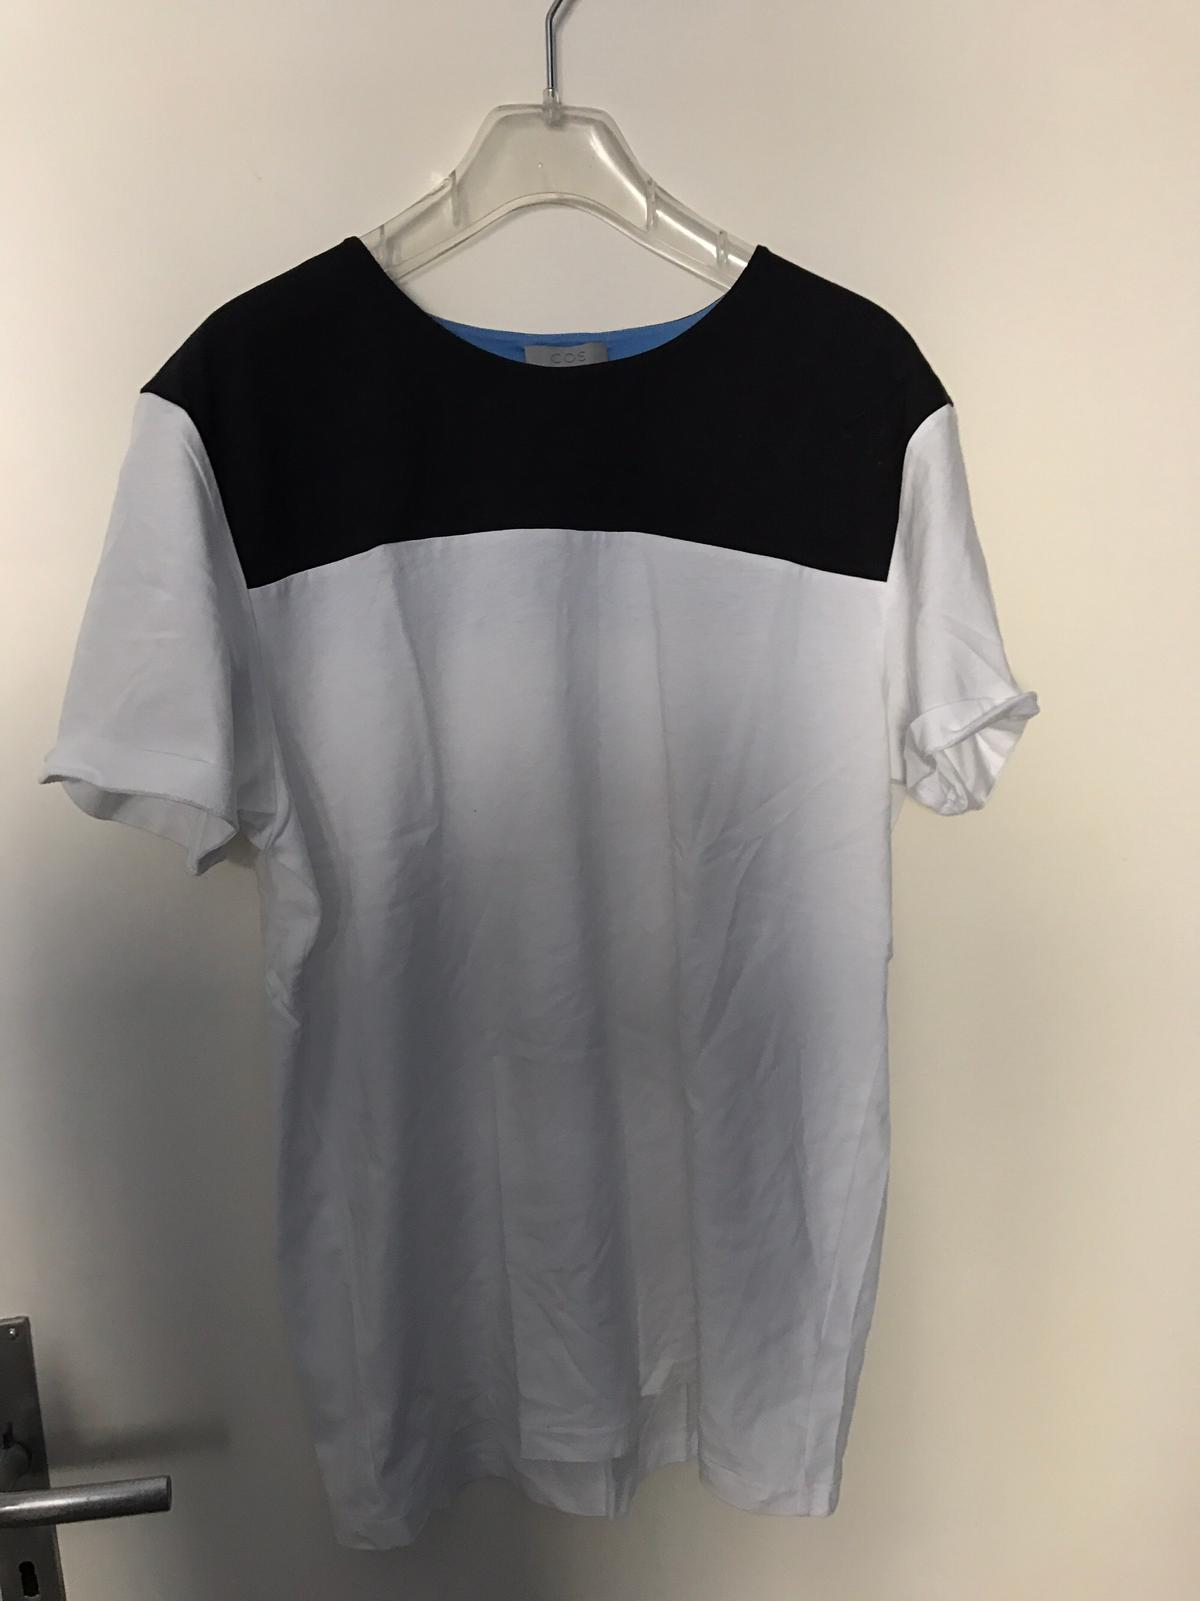 Cos T Shirt Gr L Schwarz Weiss In 80798 München For 10 00 For Sale Shpock